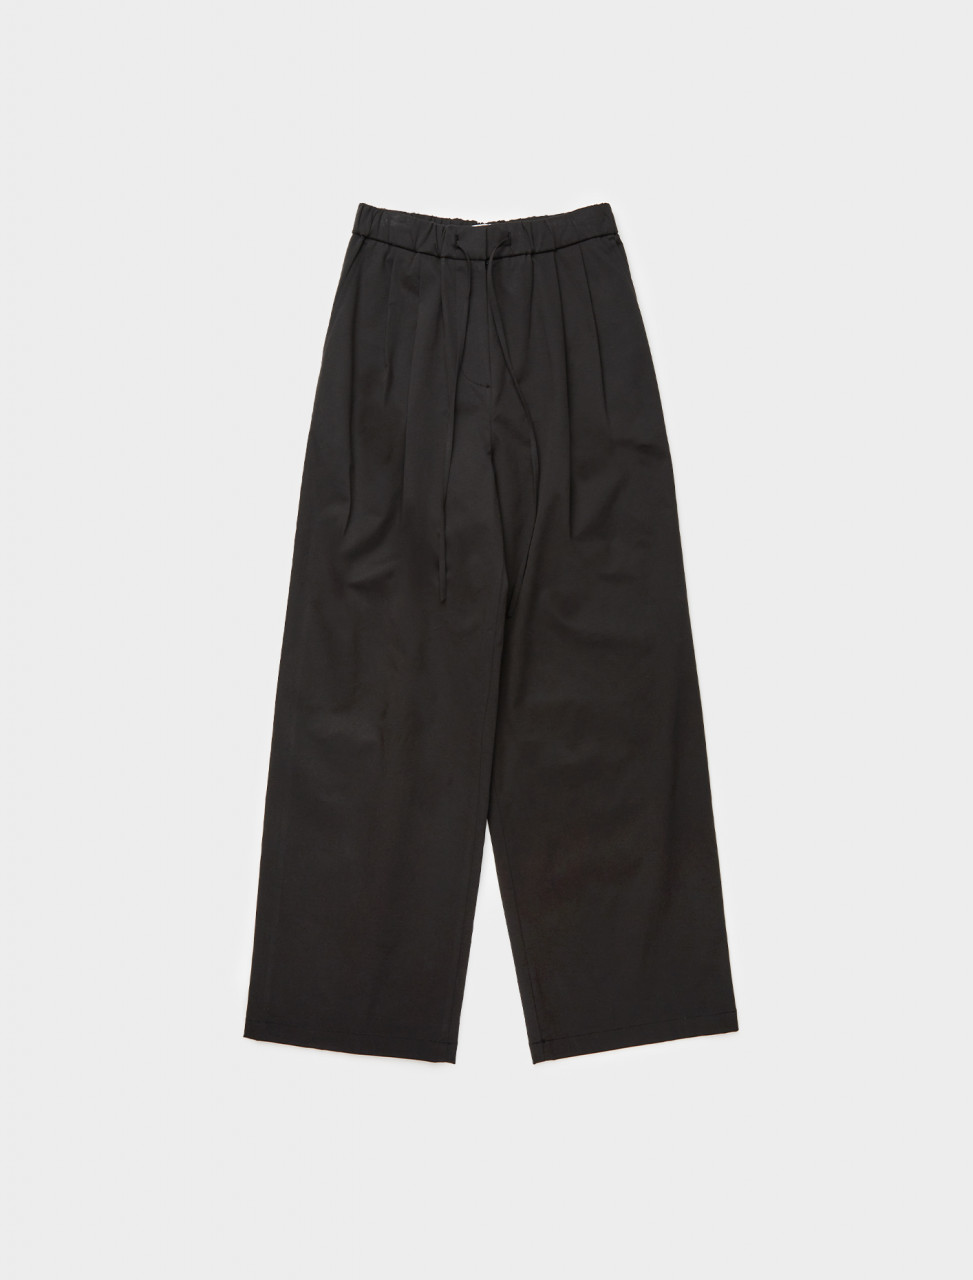 353-AM20FW03PT AMOMENTO DRAWSTRING WIDE TROUSER